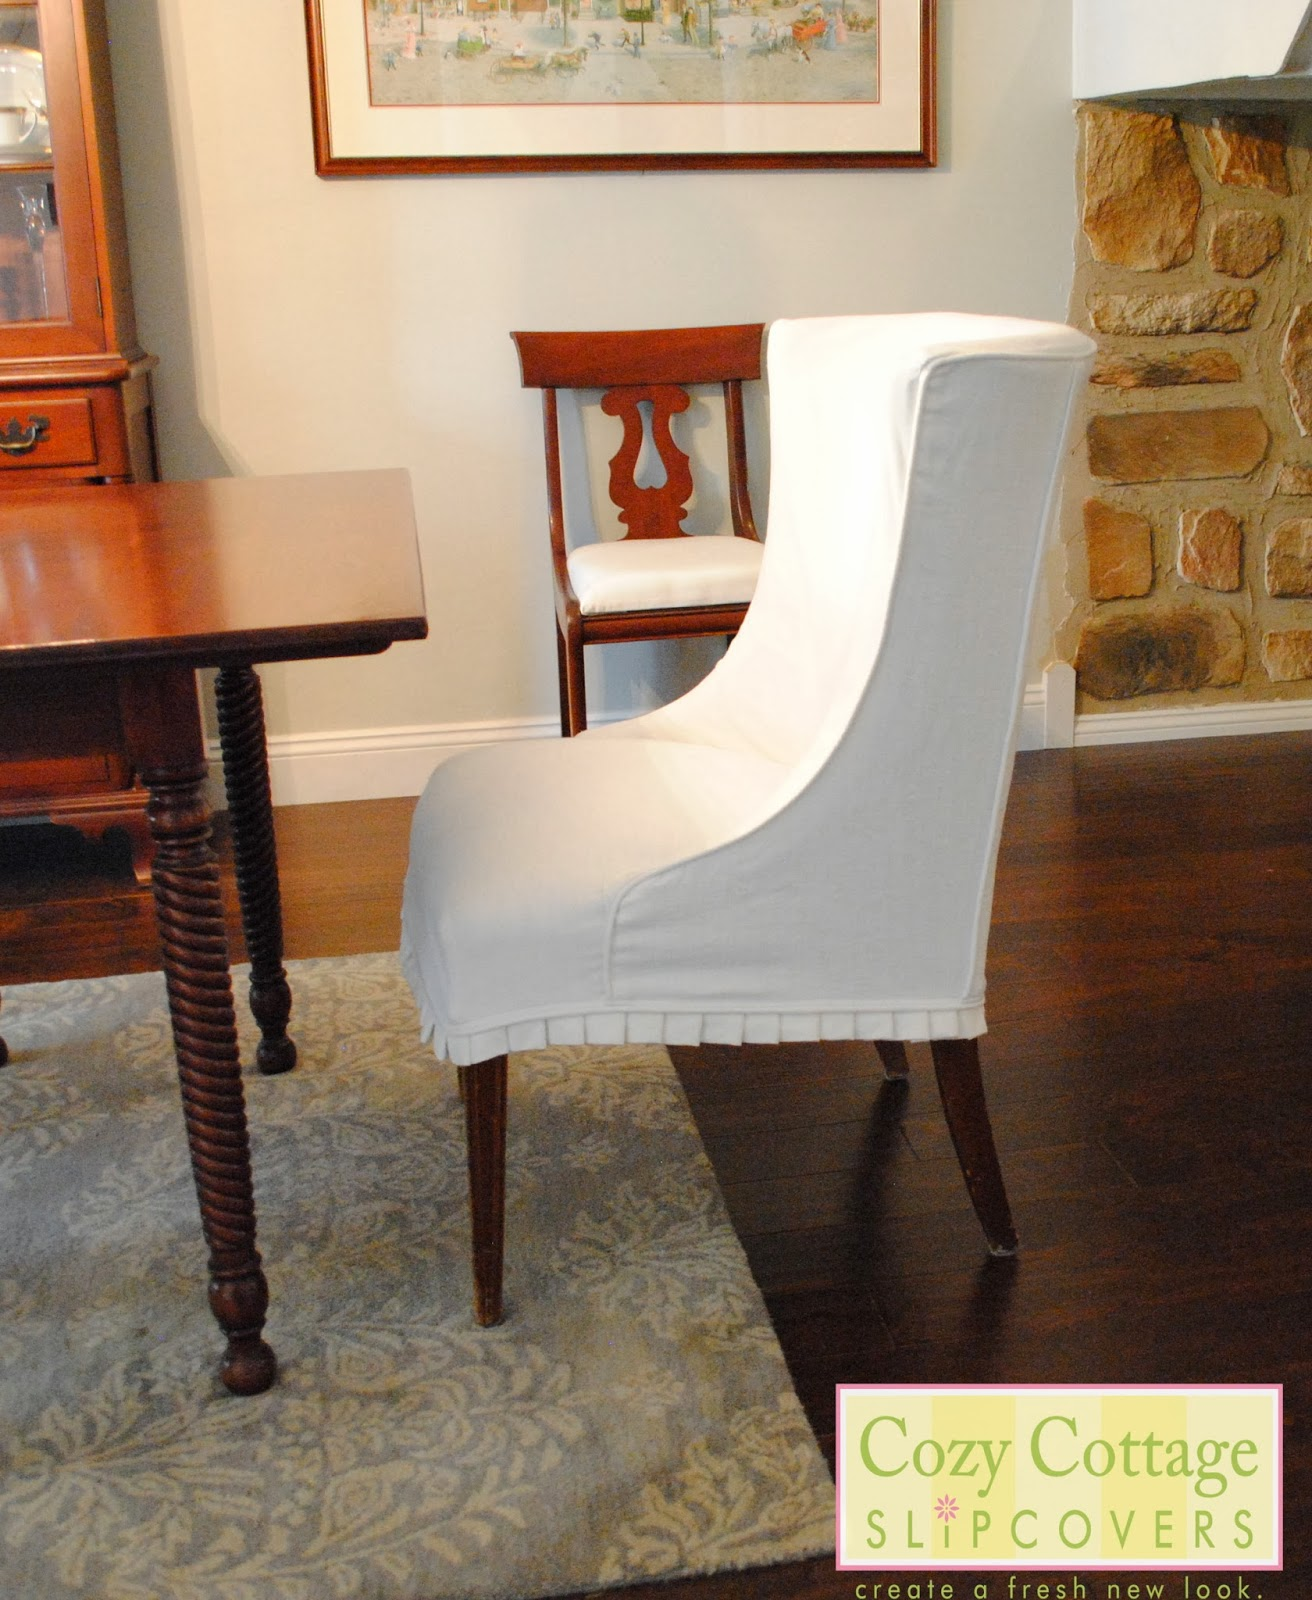 White Dining Chair Slipcovers Cozy Cottage Slipcovers White Slipcovers In The Dining Room